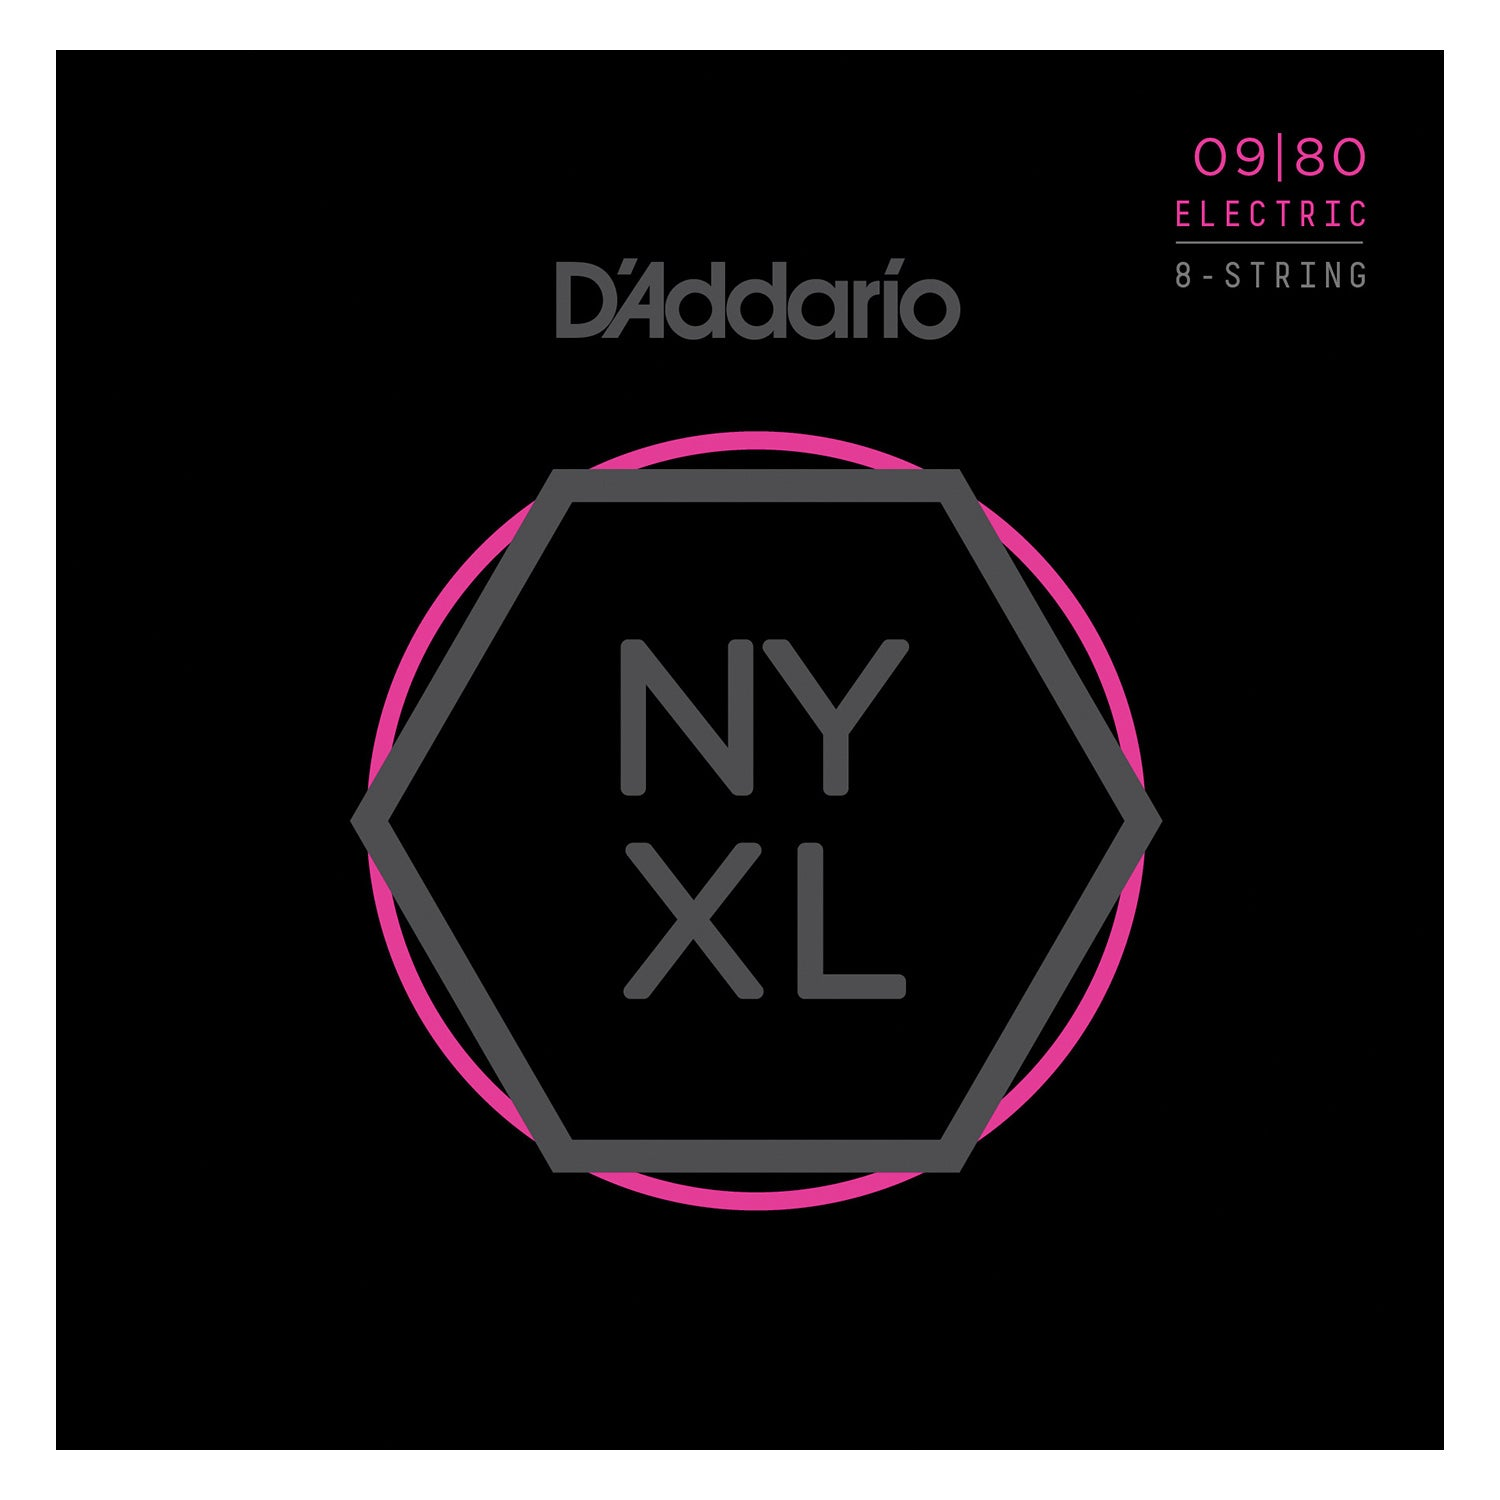 D'Addario NYXL0980 Nickel Wound 8-String Electric Guitar Strings, Super Light, 09-80